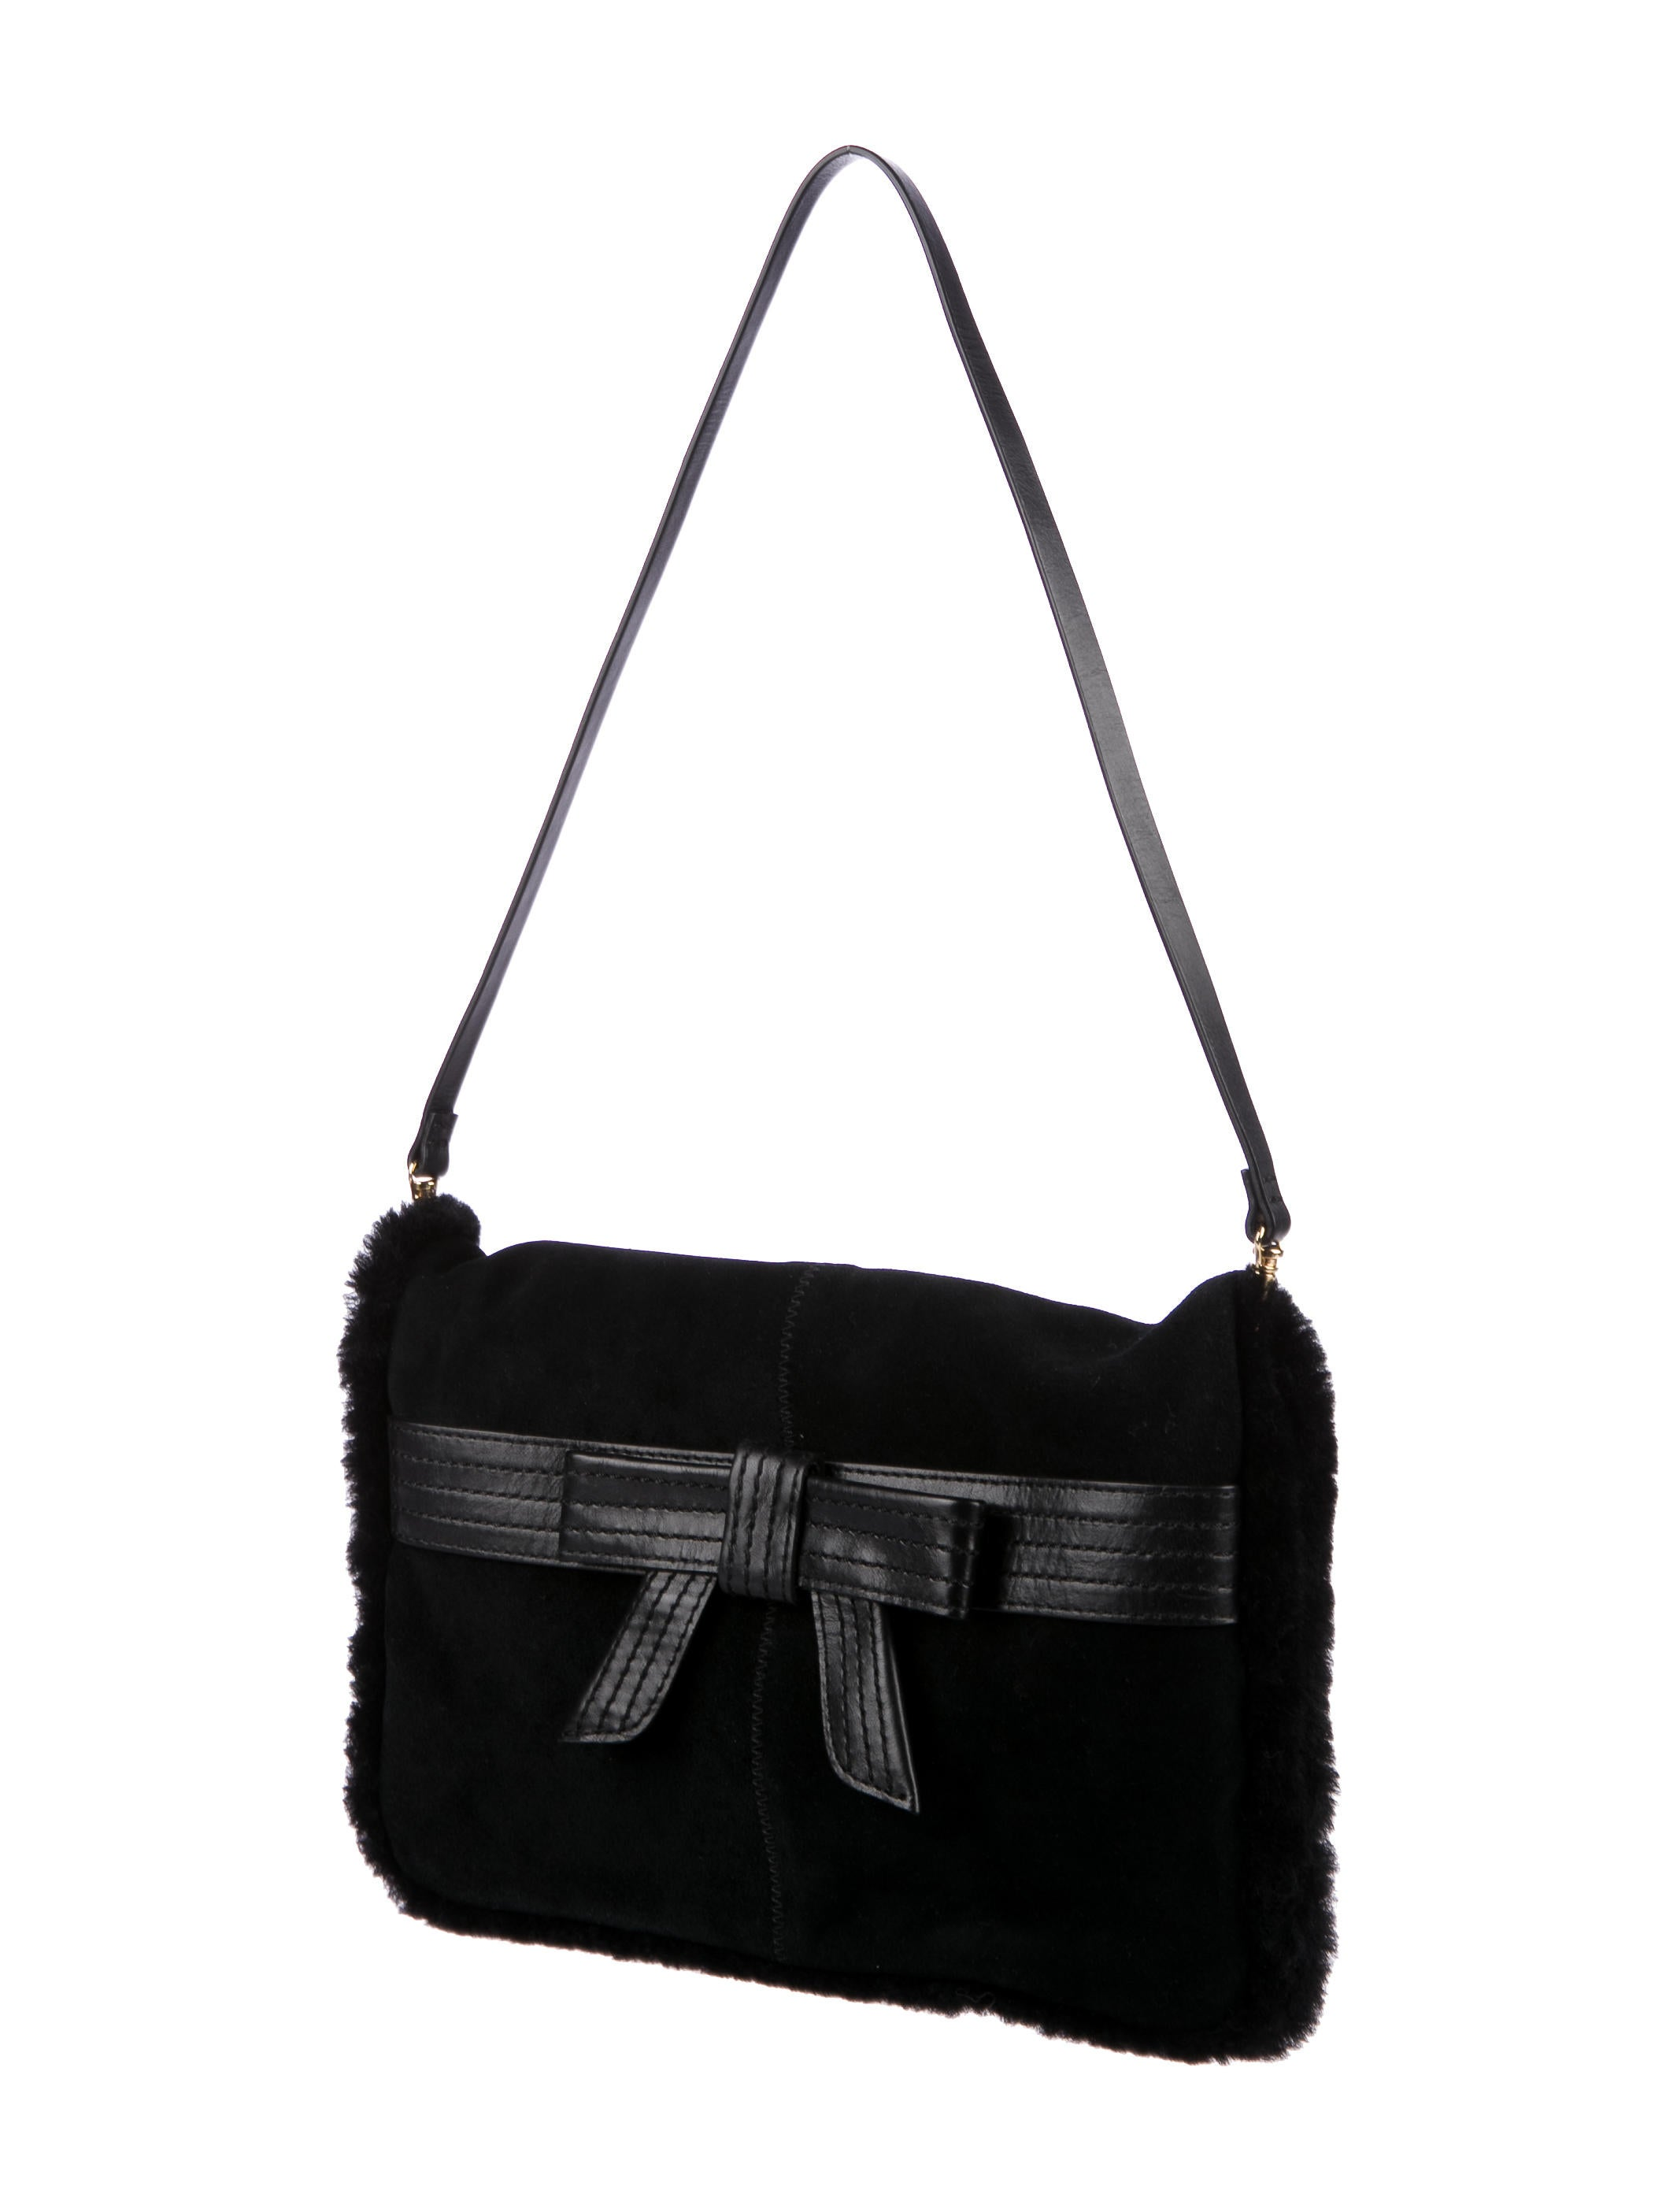 ⭐ UGG Australia ⭐ Black Genuine Leather Shoulder Bag / Clutch This UGG Australia shoulder bag features gold tone hardware, adjustable shoulder strap ( drop), which can also be removed and turn into a clutch bag, and front Zip.